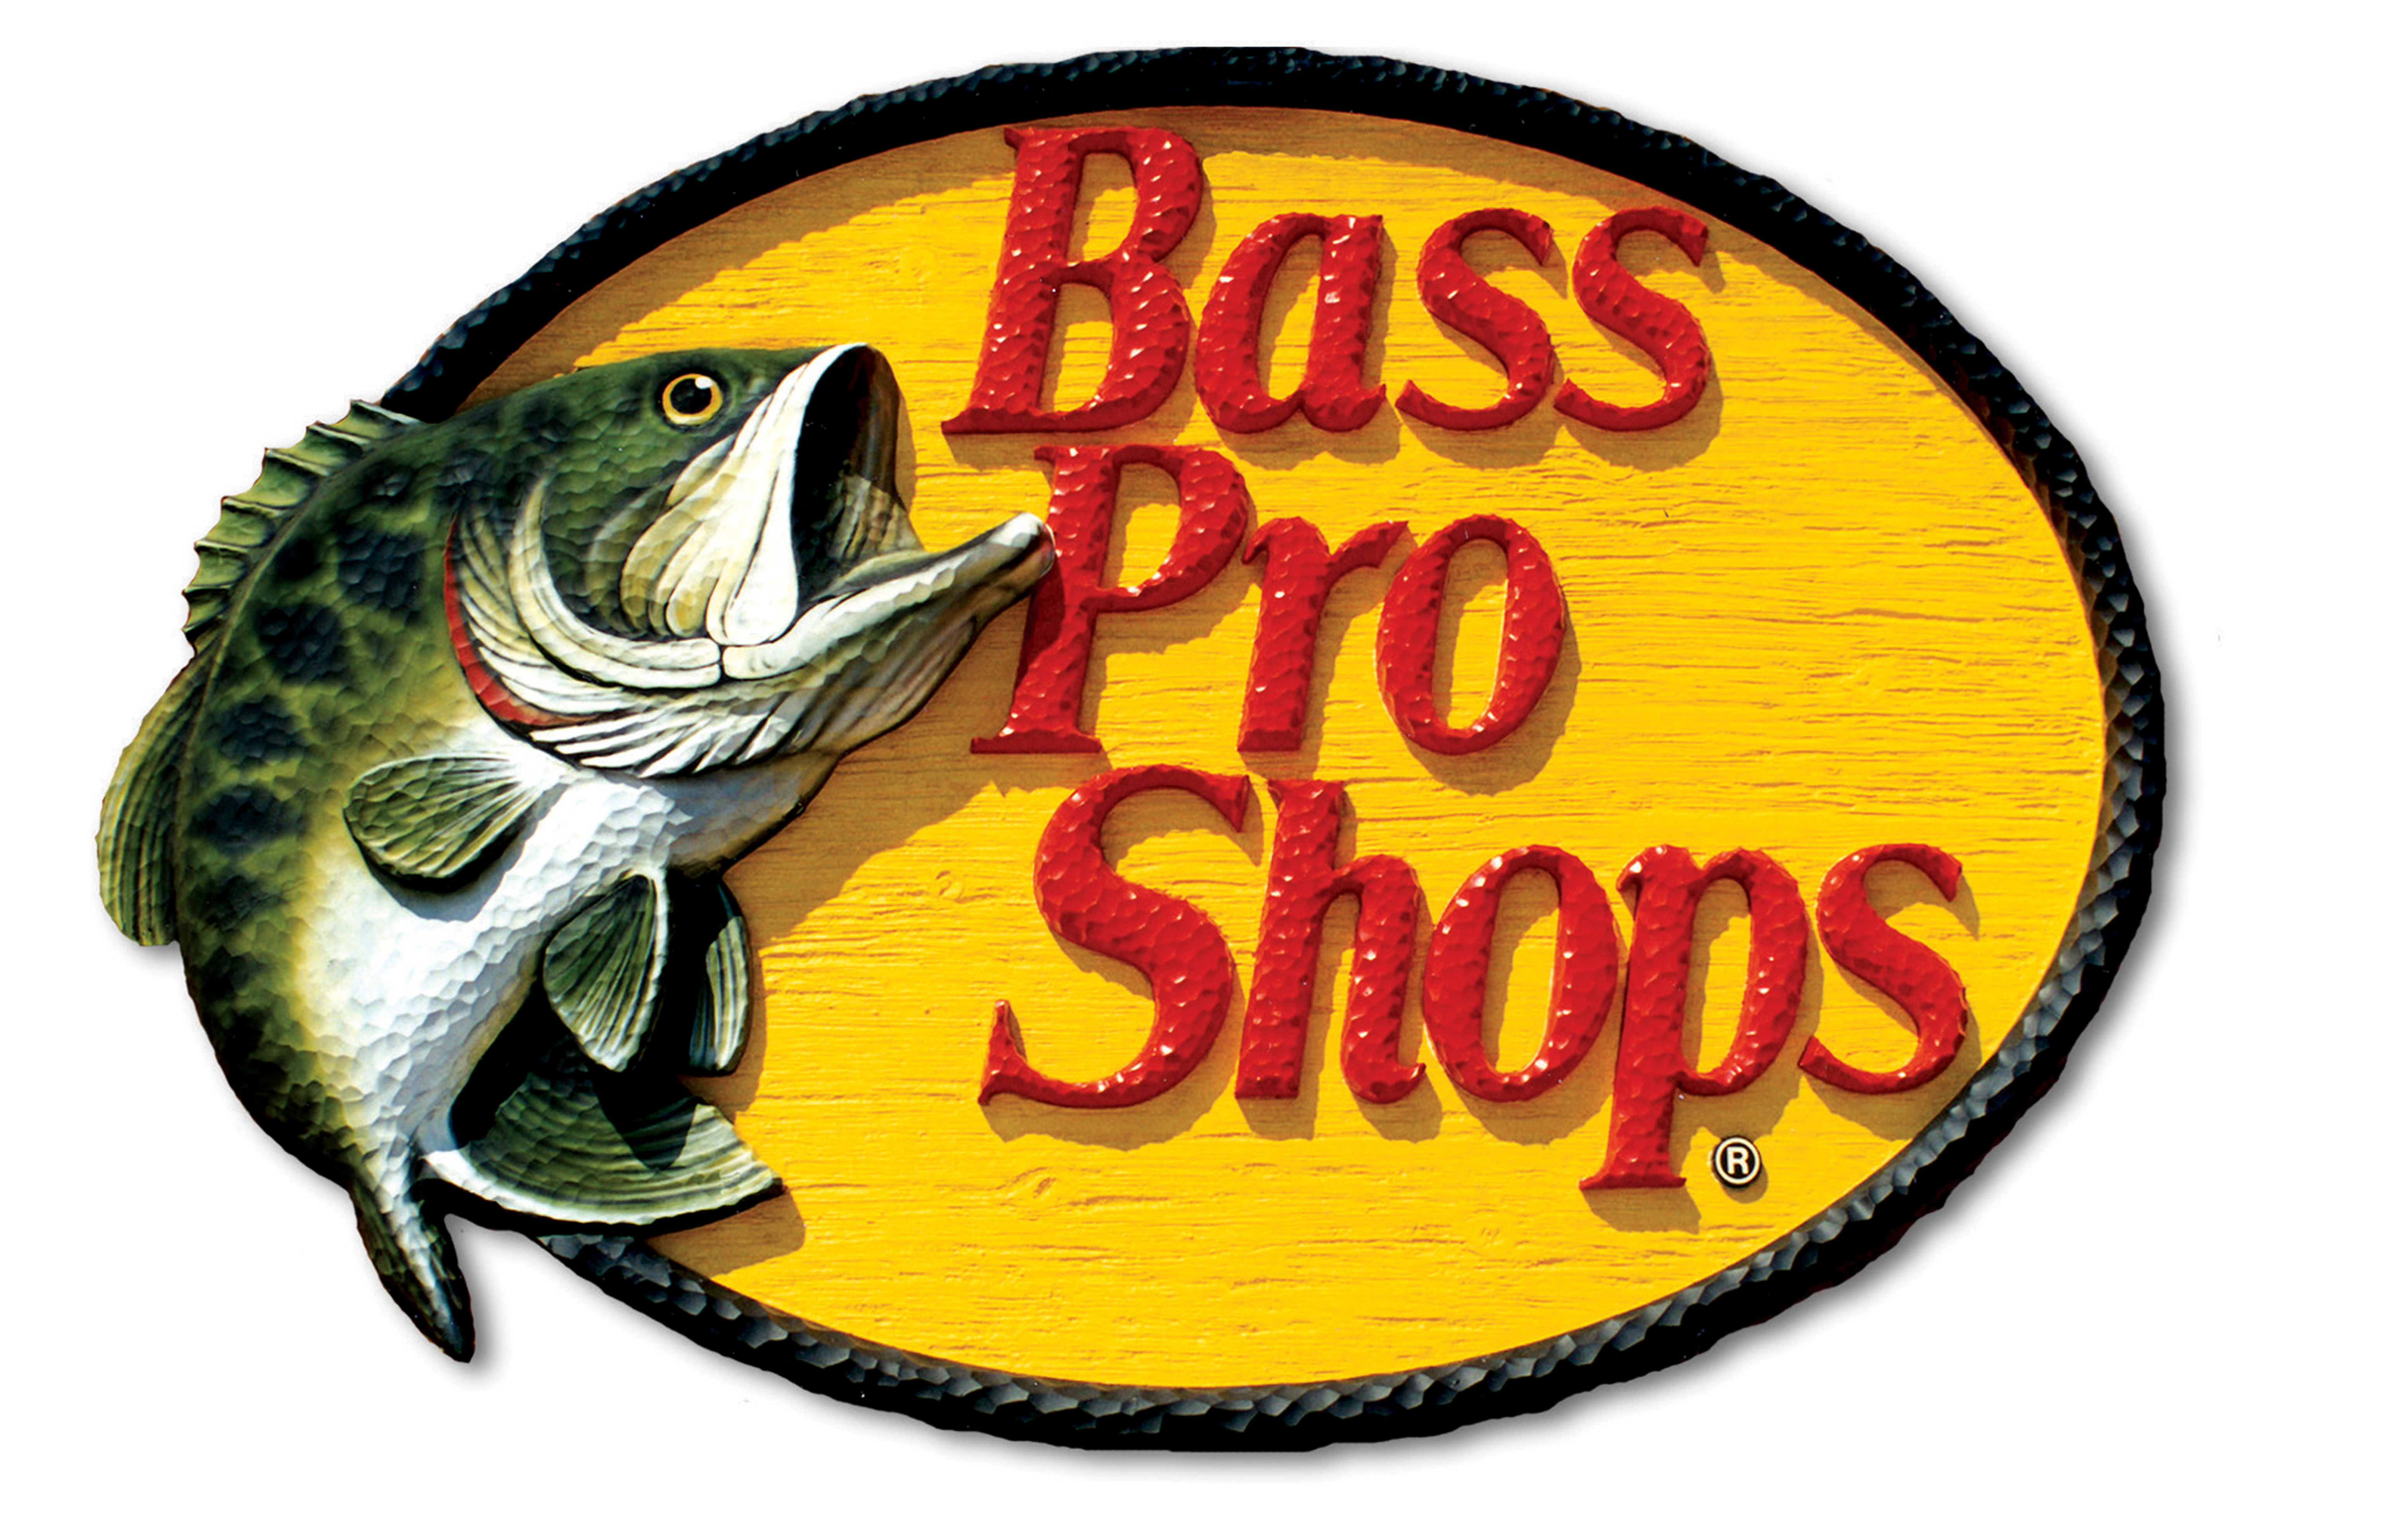 Bass clothing store outlet